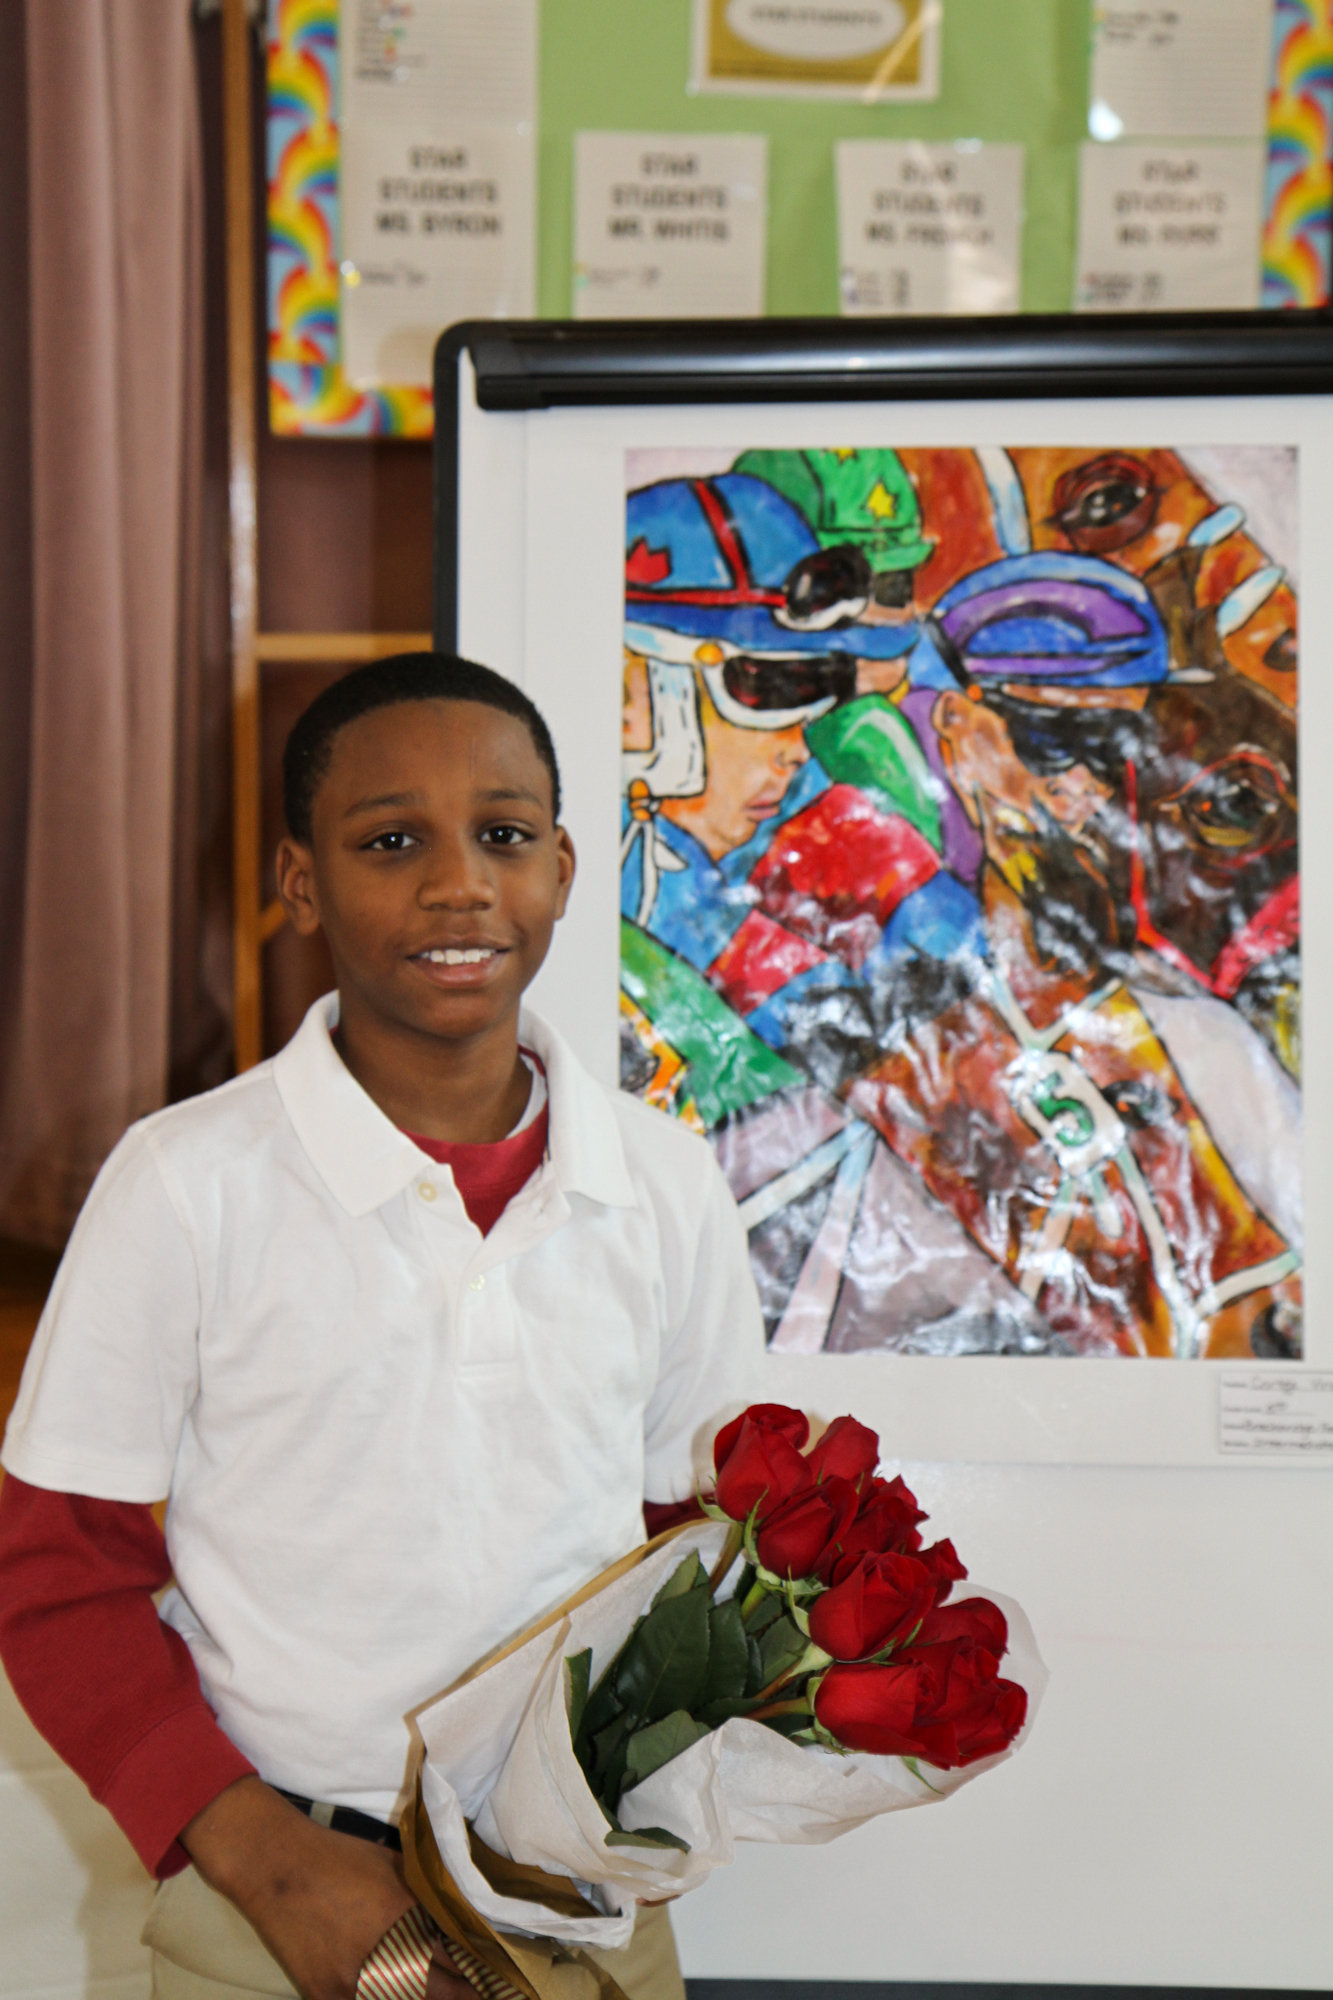 2013 Student Art Show Winner Surprised With Box Seats to the Kentucky Derby